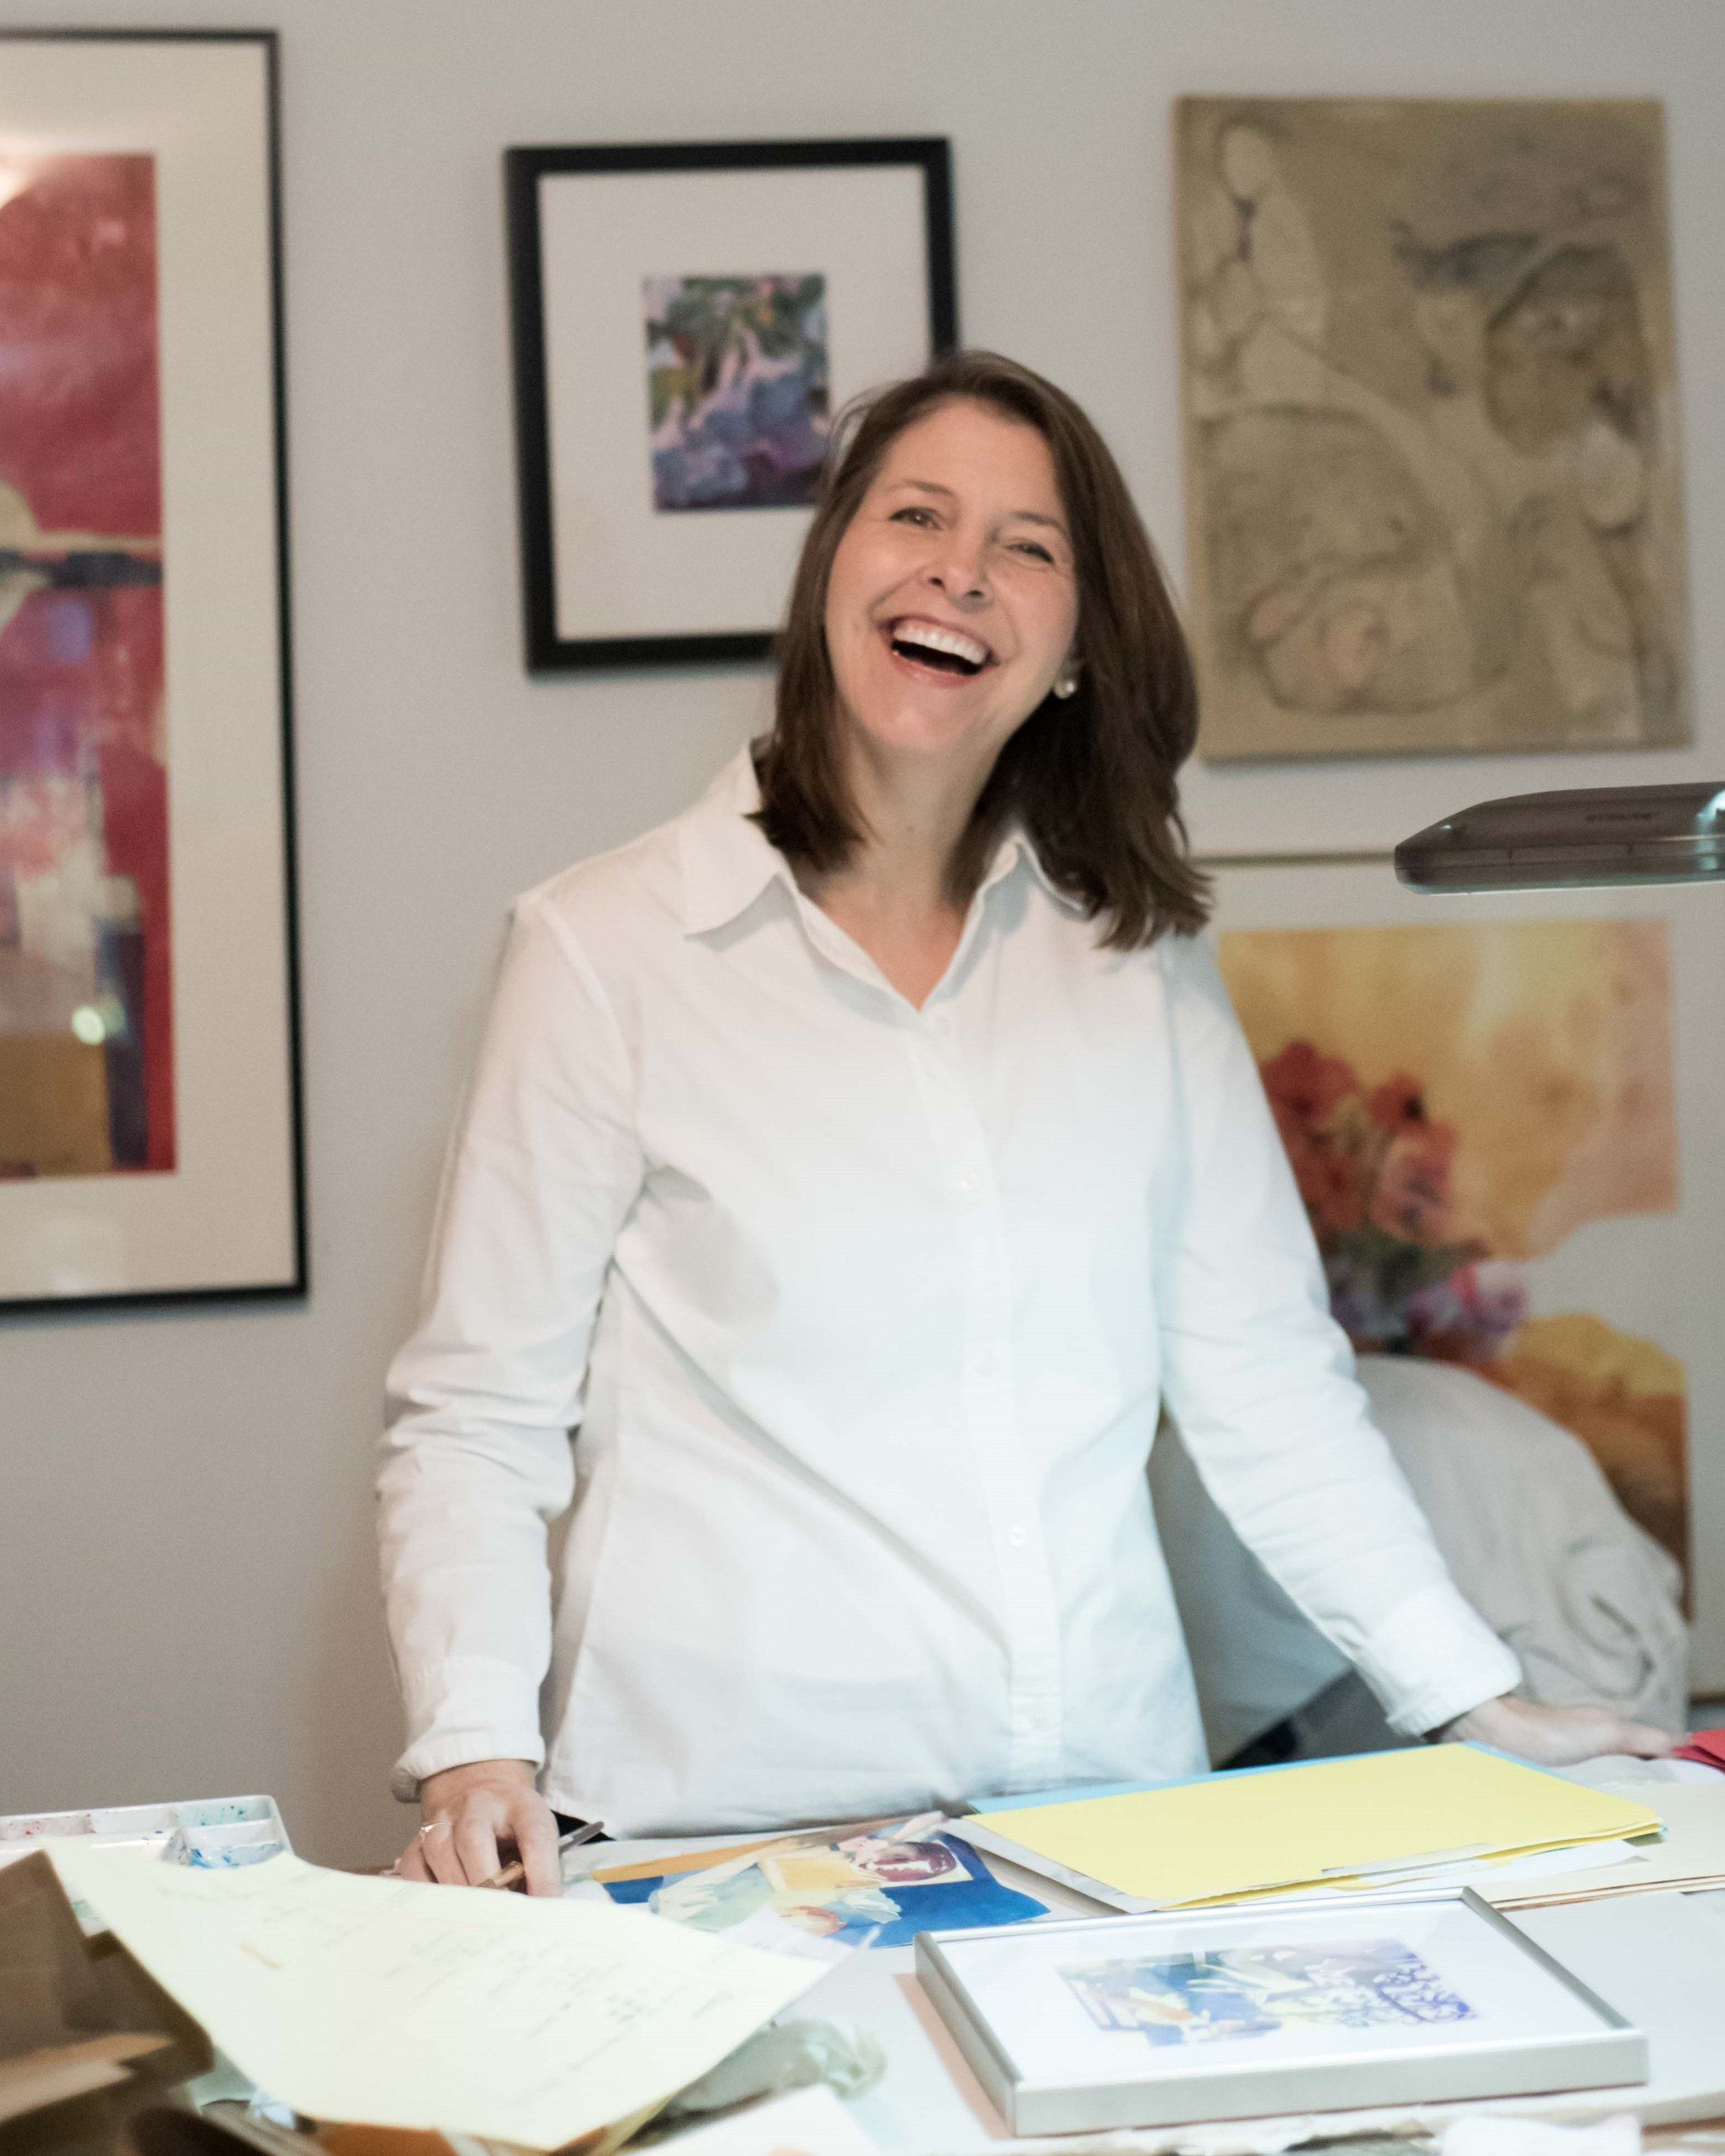 Carolyn welcomes you to her studio!